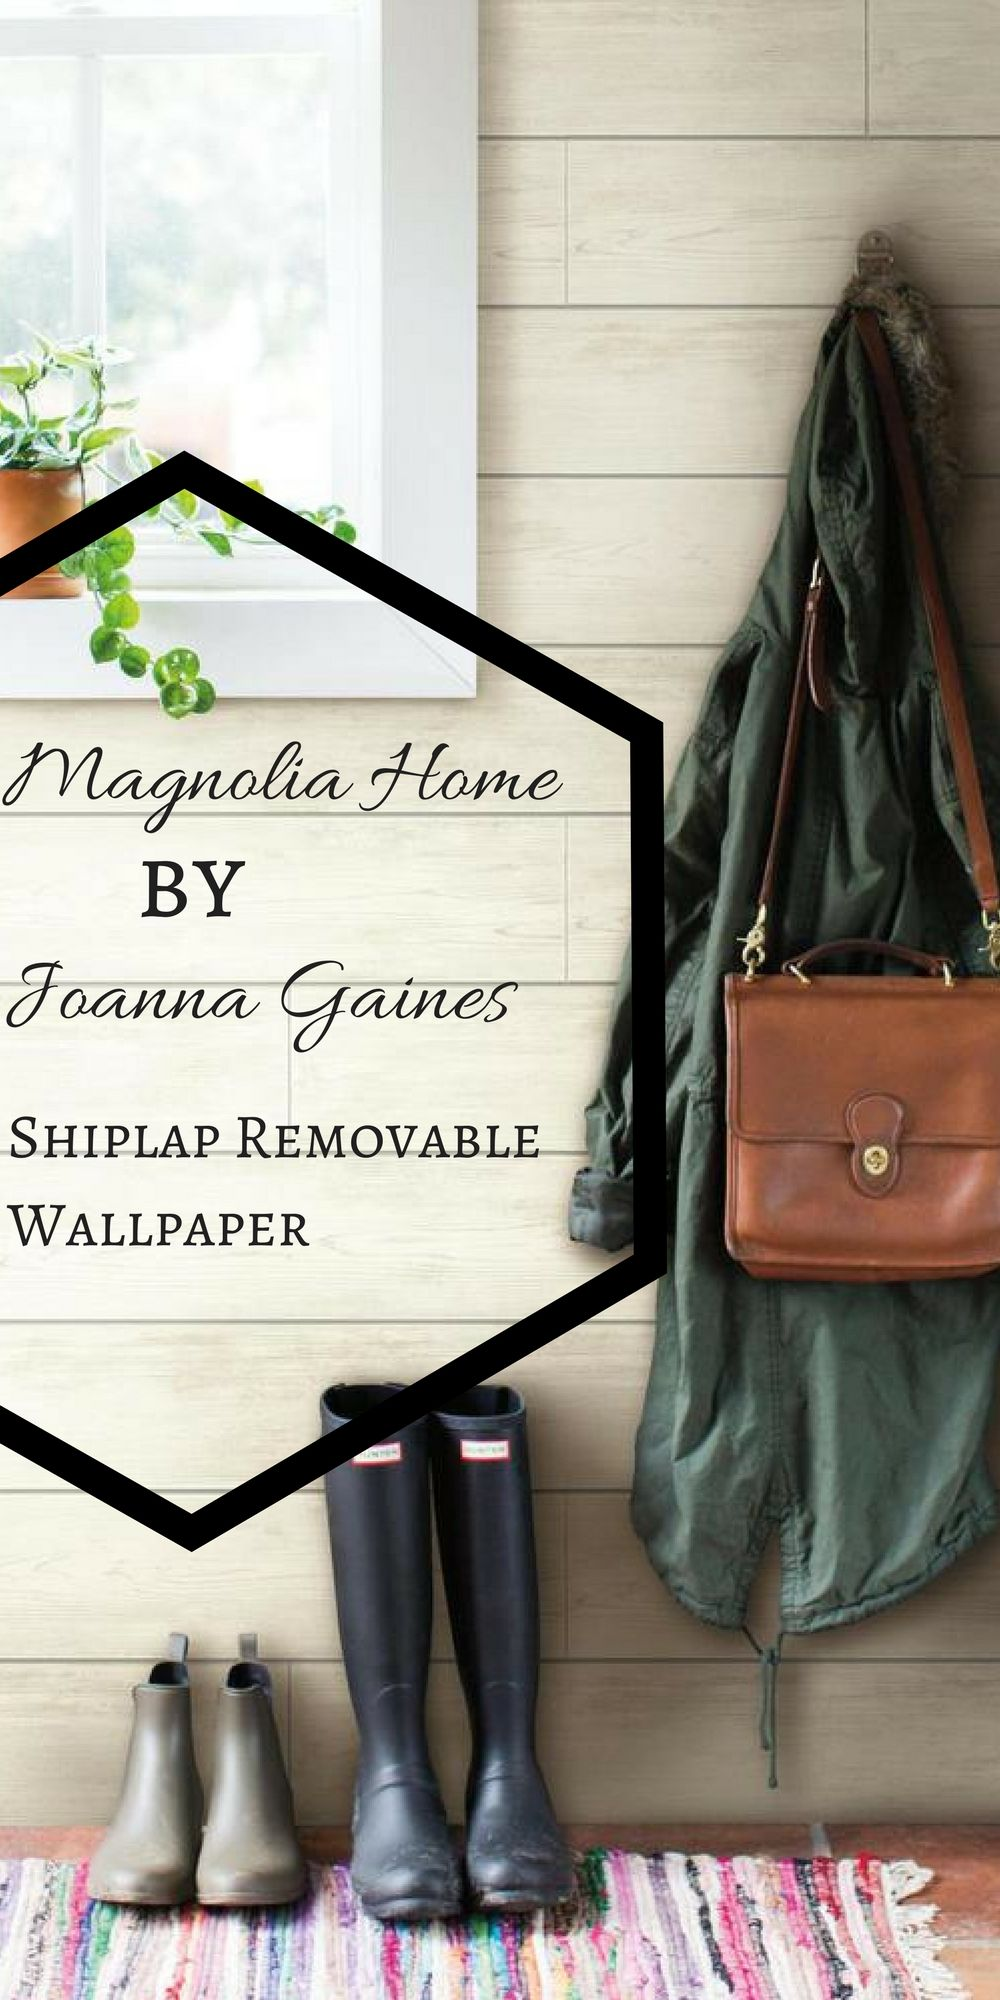 Magnolia Home by Joanna Gaines Home Depot Shiplap